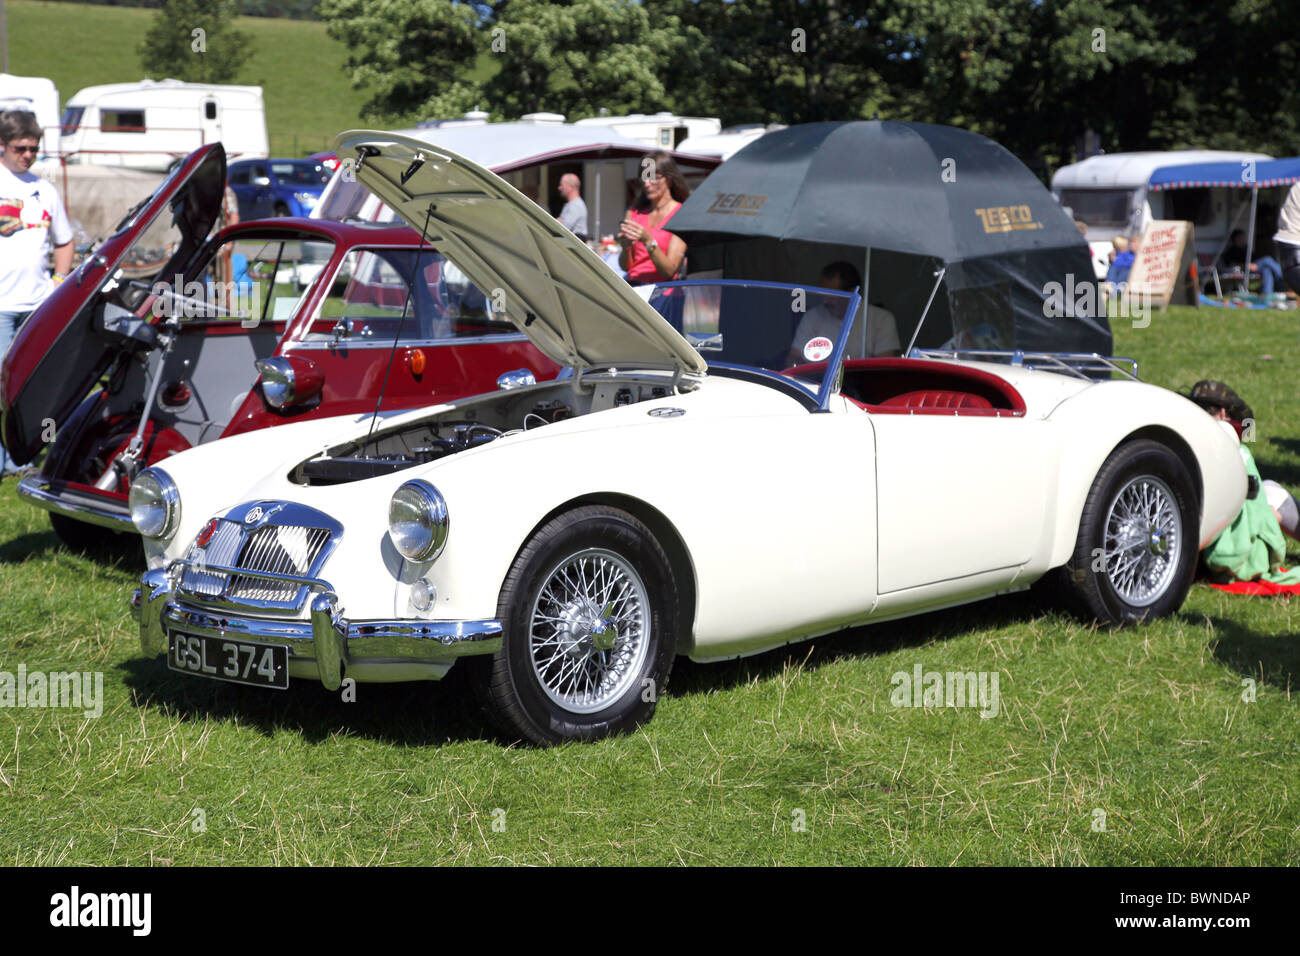 WEIßE MGA CLASSIC CAR STAINDROP NORTH YORKSHIRE RABY CASTLE STAINDROP NORTH YORKSHIRE STAINDROP NORTH YORKSHIRE Stockbild